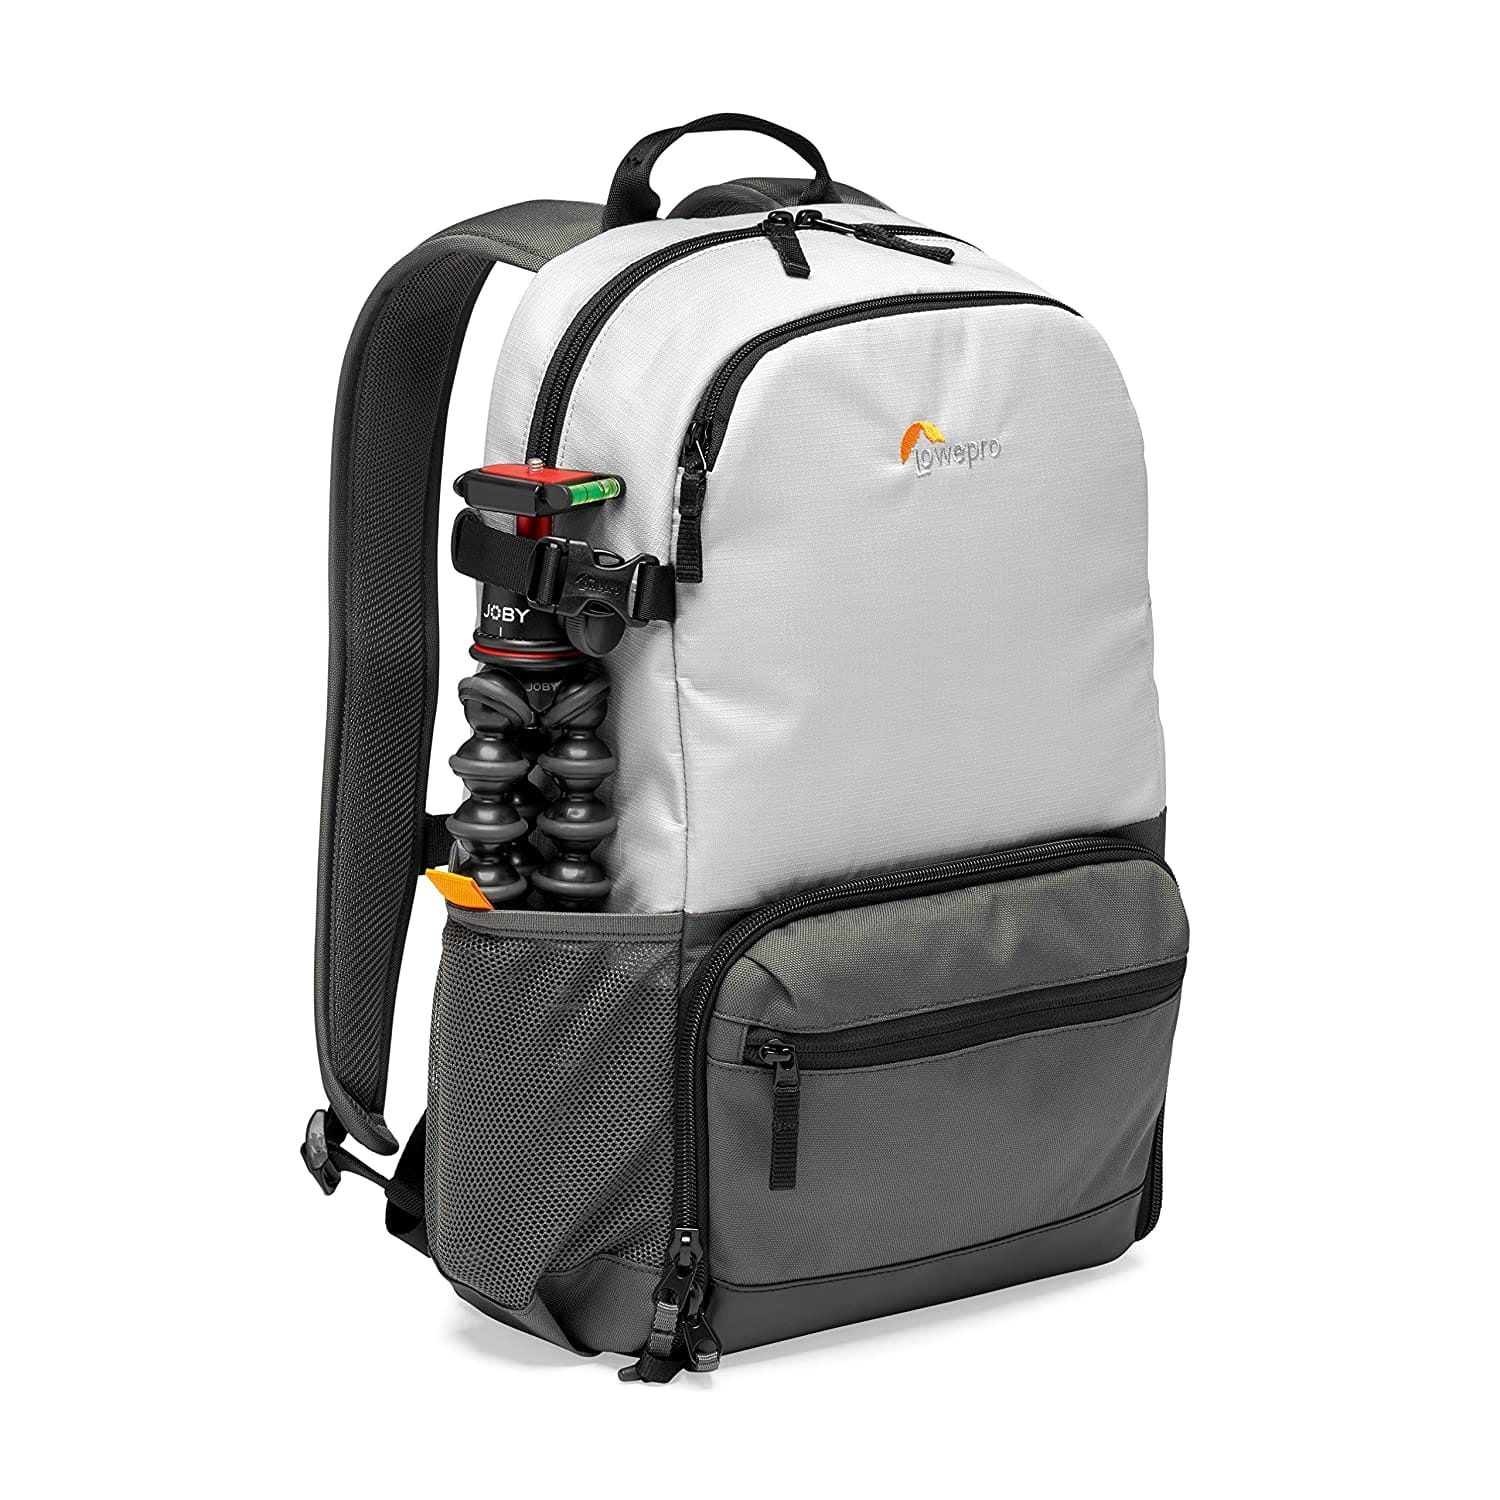 Lowepro Truckee BP 200 LX Camera Backpack (Grey) $22.15 + Free Shipping w/ Amazon Prime or On Orders $25+